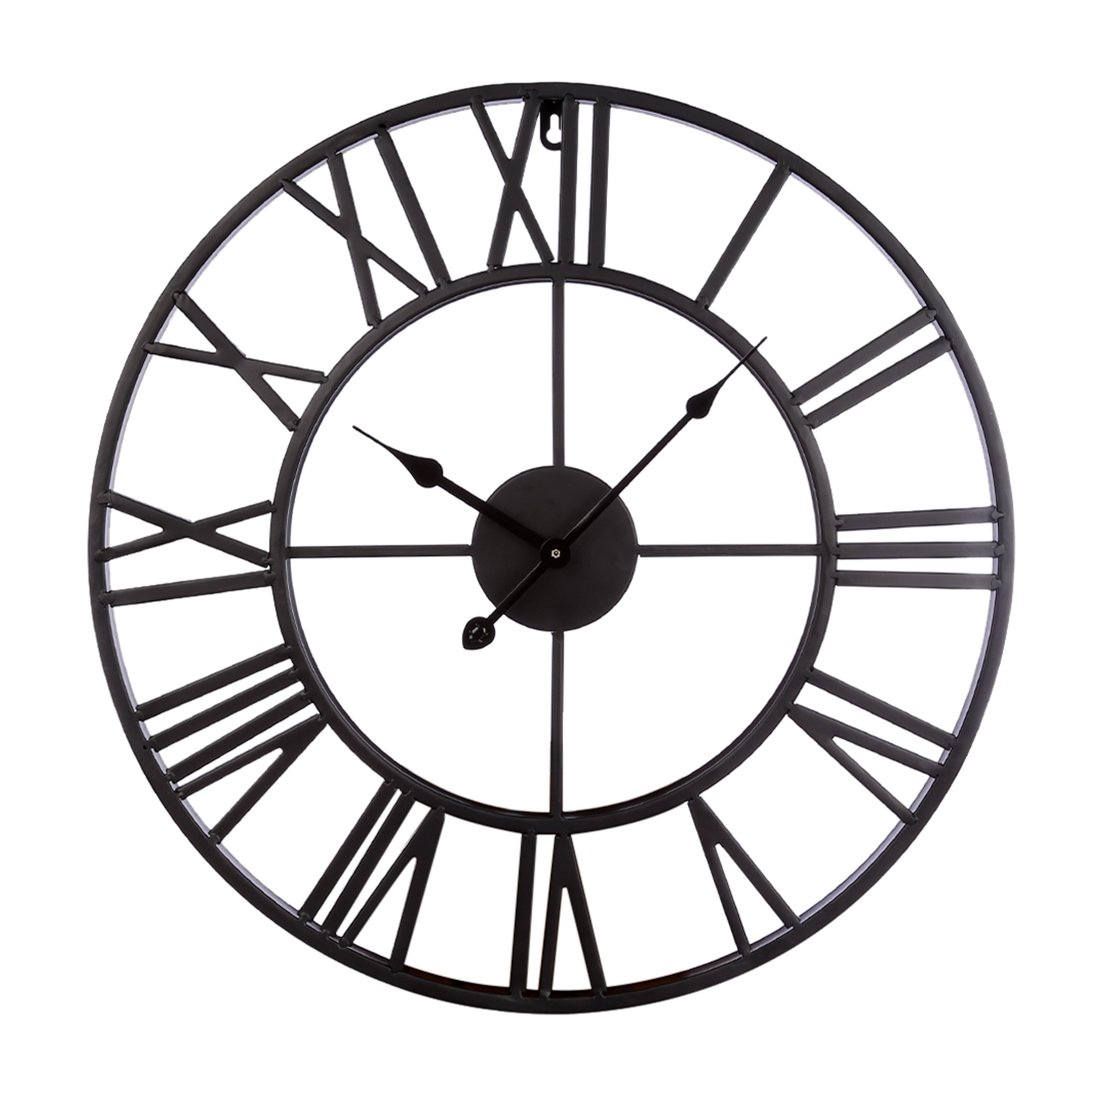 XSHION Vintage Wall Clock, 20 Inch Wall Clocks Rustic Large Iron Decorative Wall Clock Antique Metal for Living Room/Kitchen/Hotel (Black)